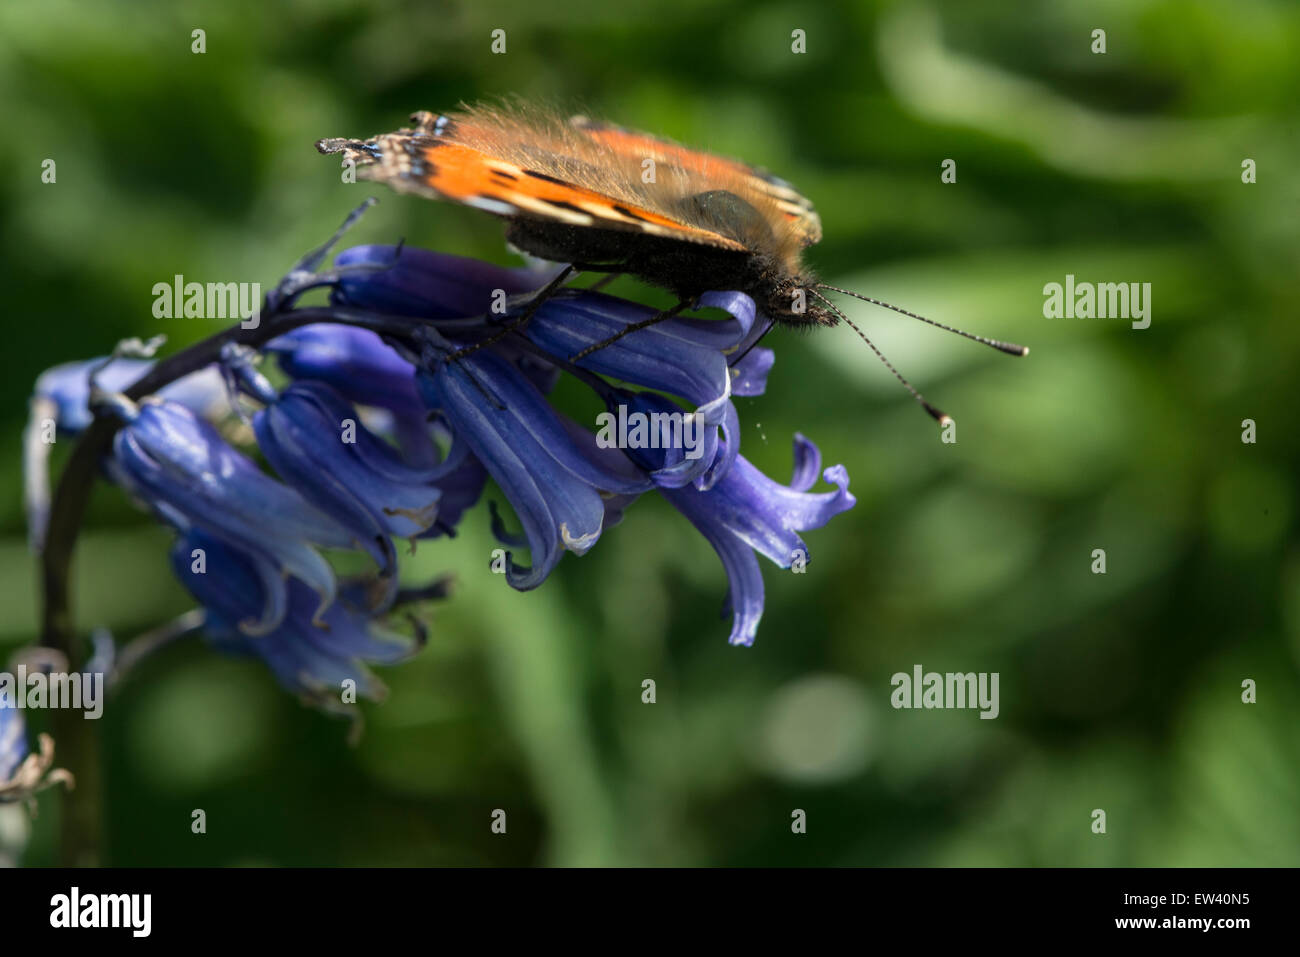 Nature; Tortoiseshell Butterfly feeding on Bluebells - Stock Image